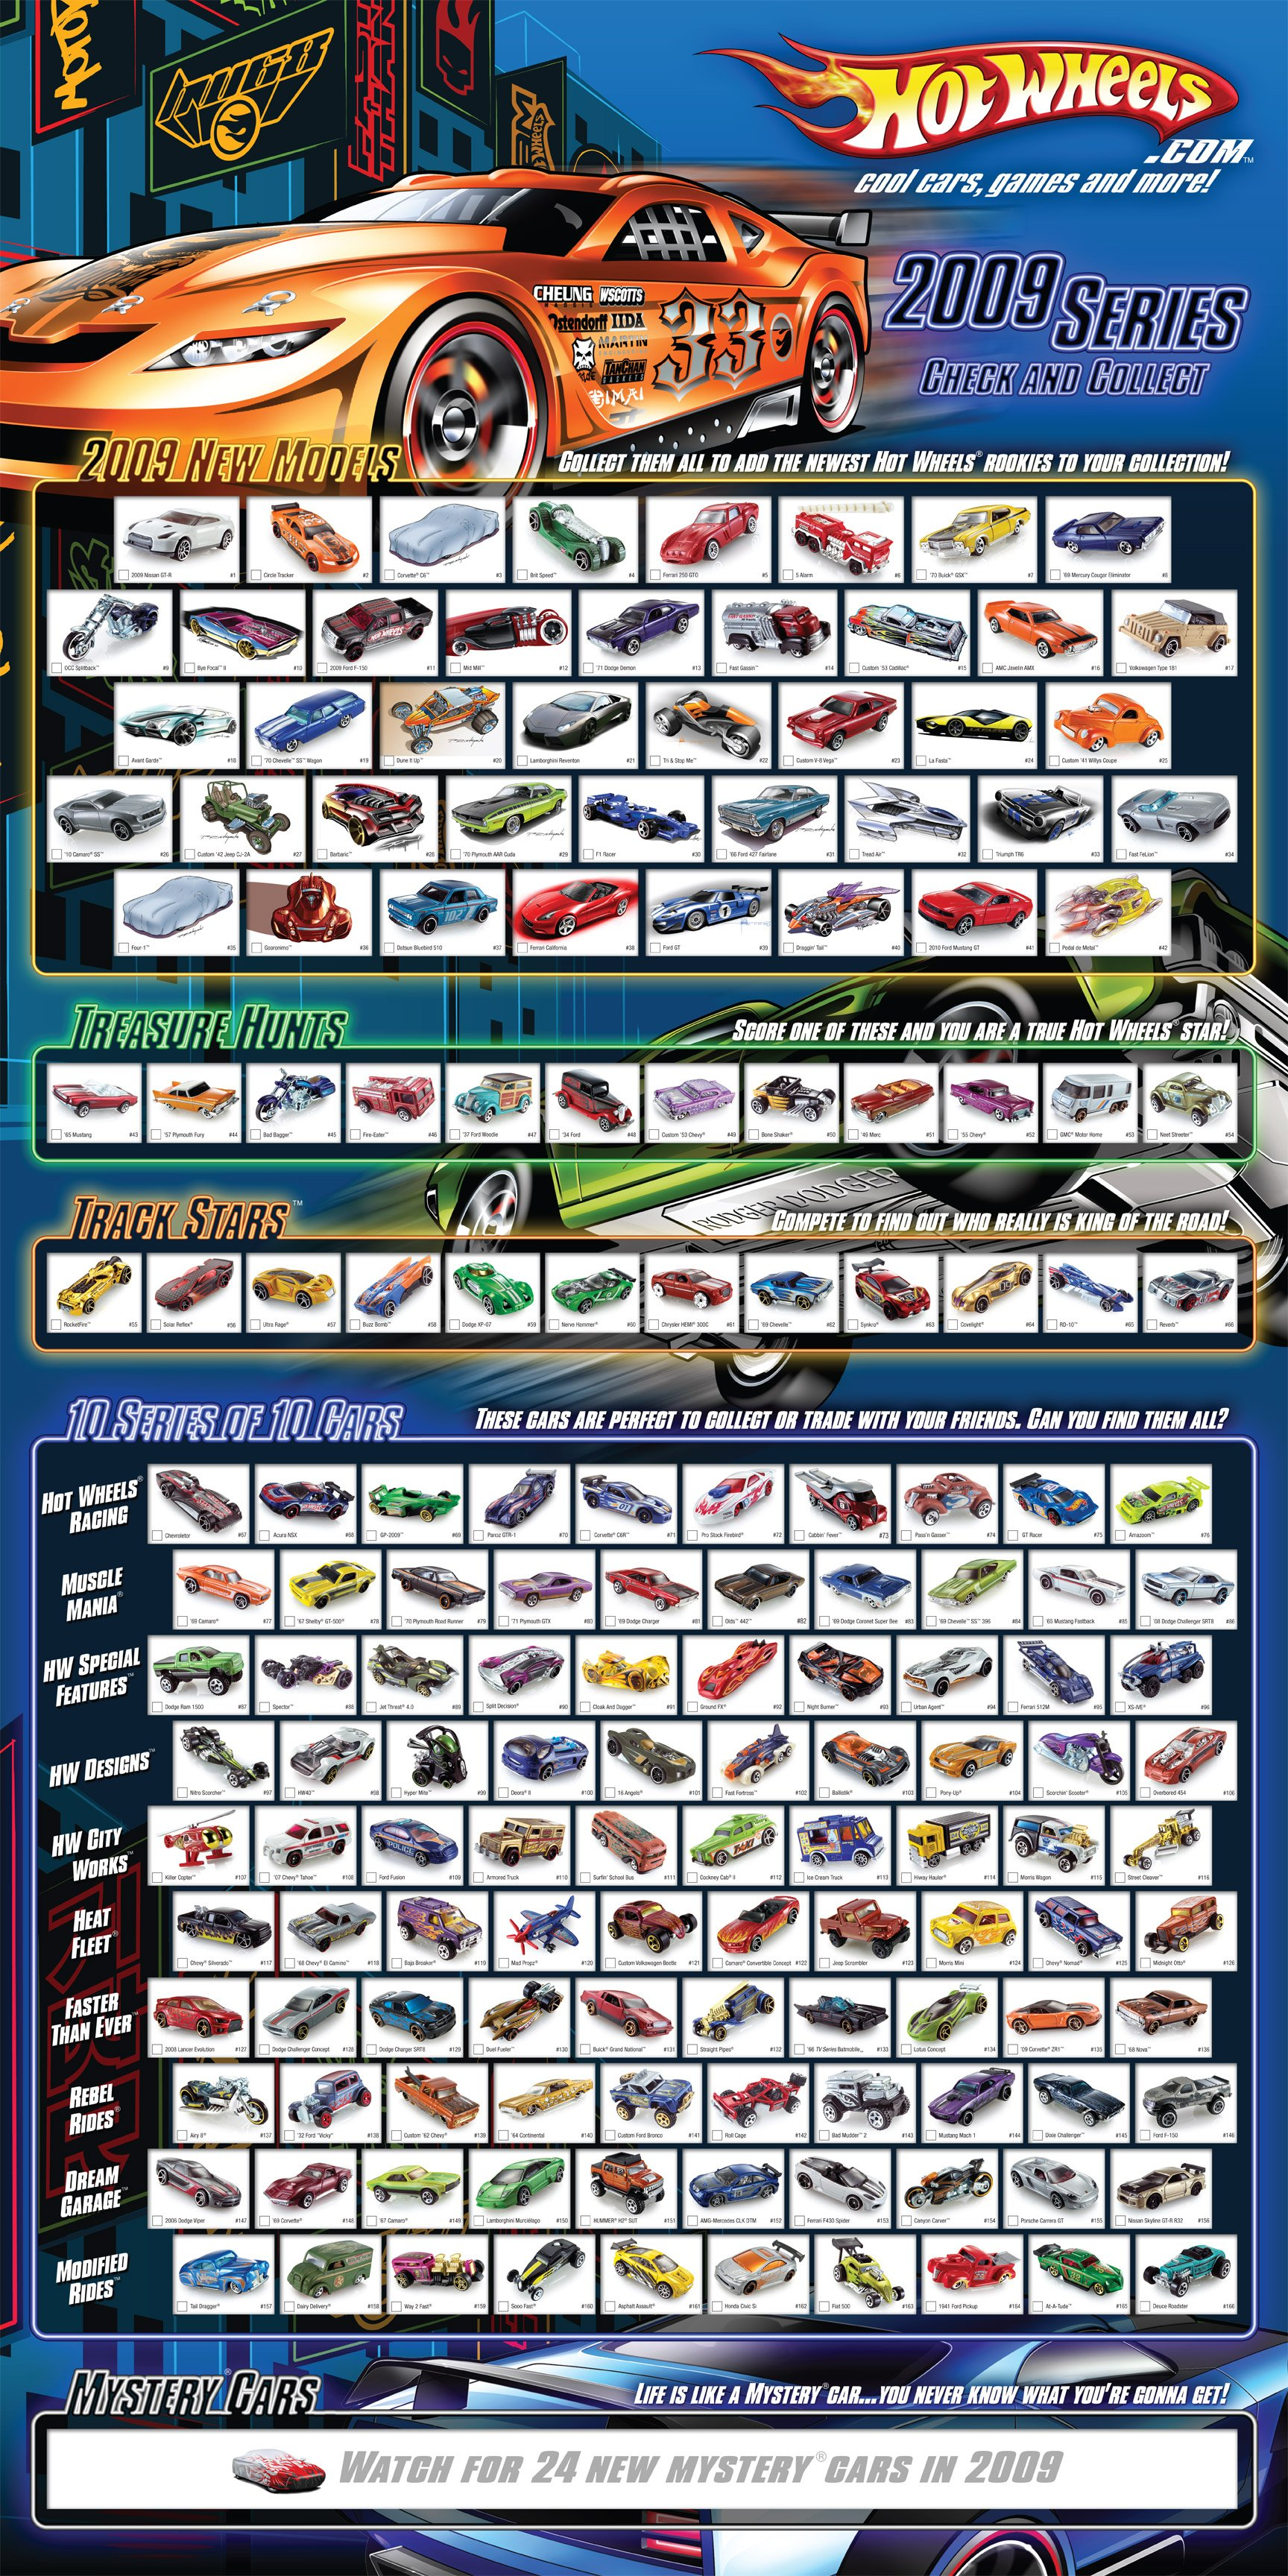 Re: 2009 Hot Wheels List!